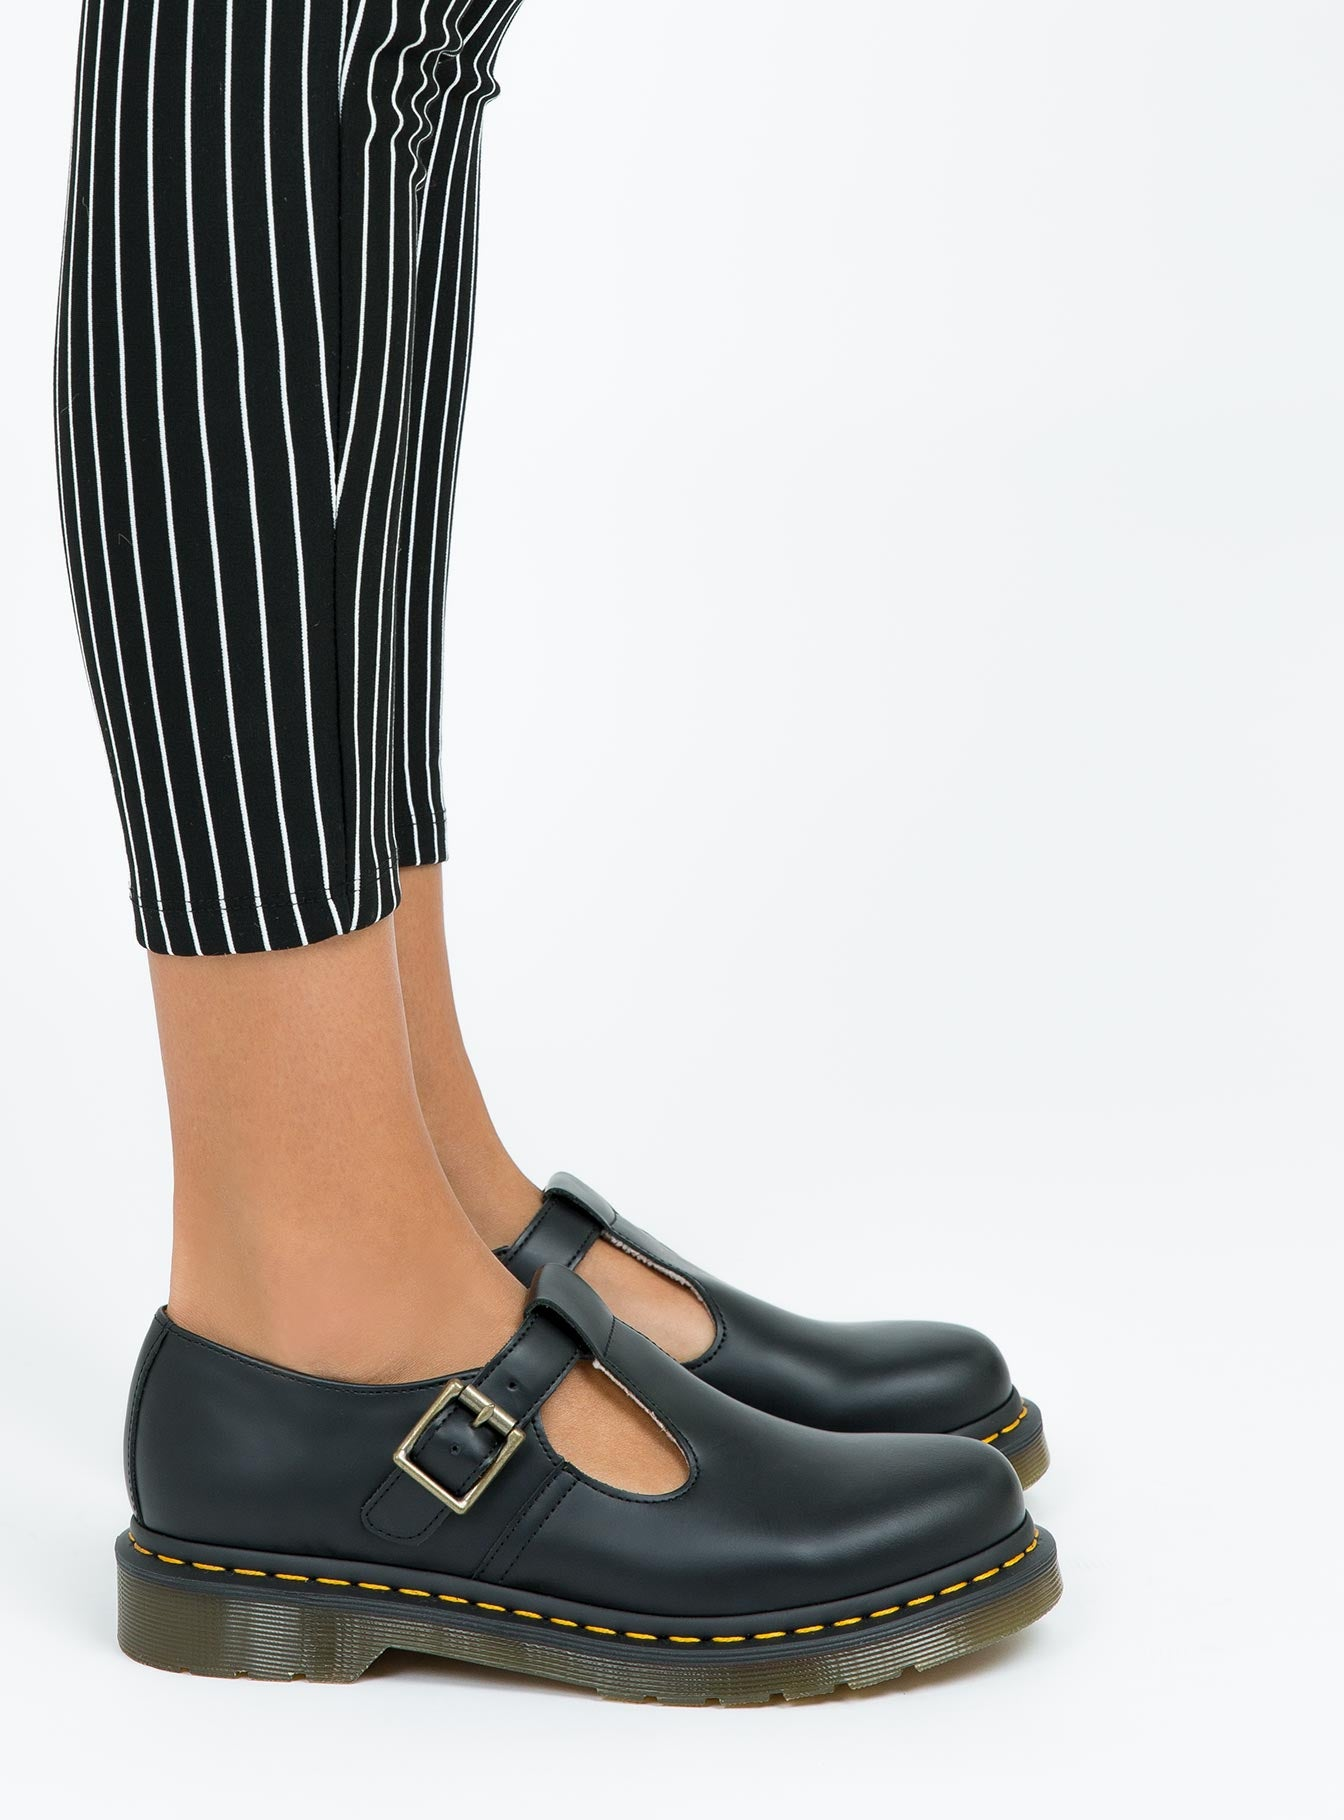 dr martens t bar mary jane